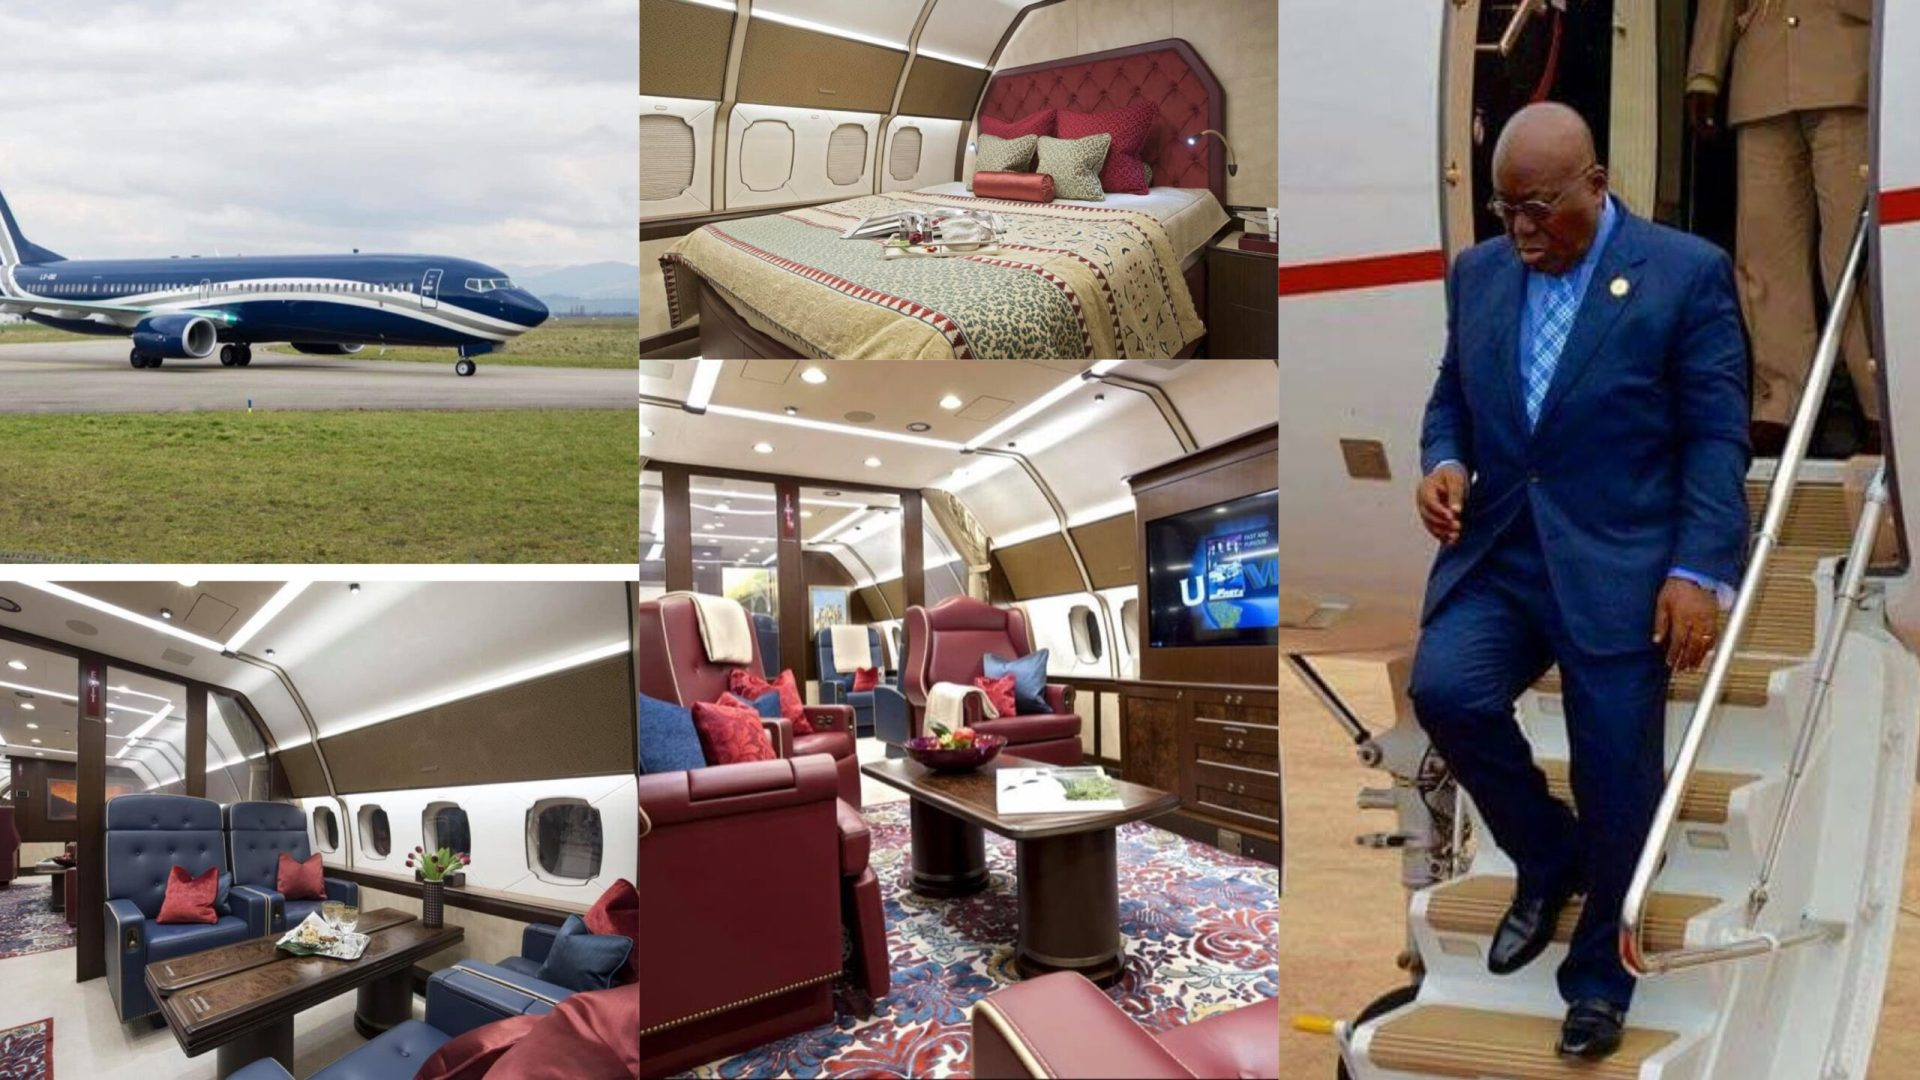 Revealed: President Akufo-Addo rents luxurious private jet to Germany which costs $15,000 per hour [Photos]